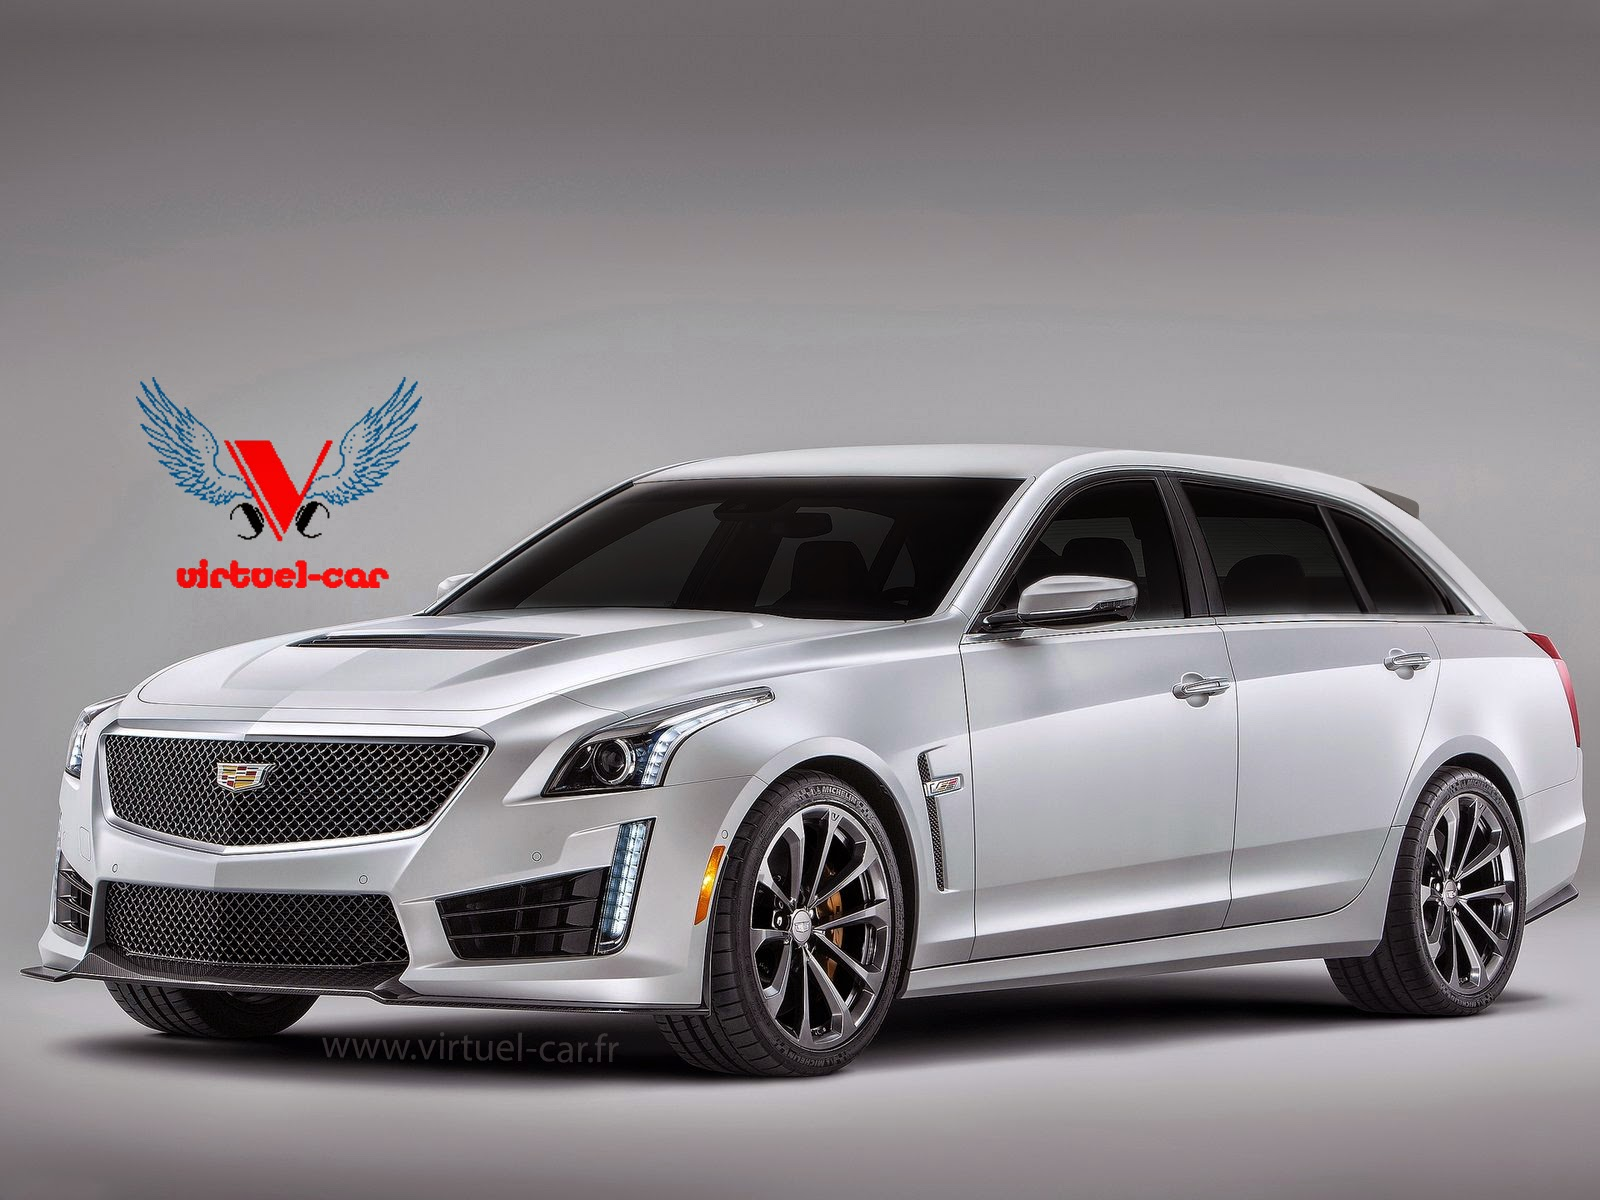 Cadillac Cts V Wagon For Sale >> 2016 Cadillac CTS-V Wagon Rendered - GTspirit